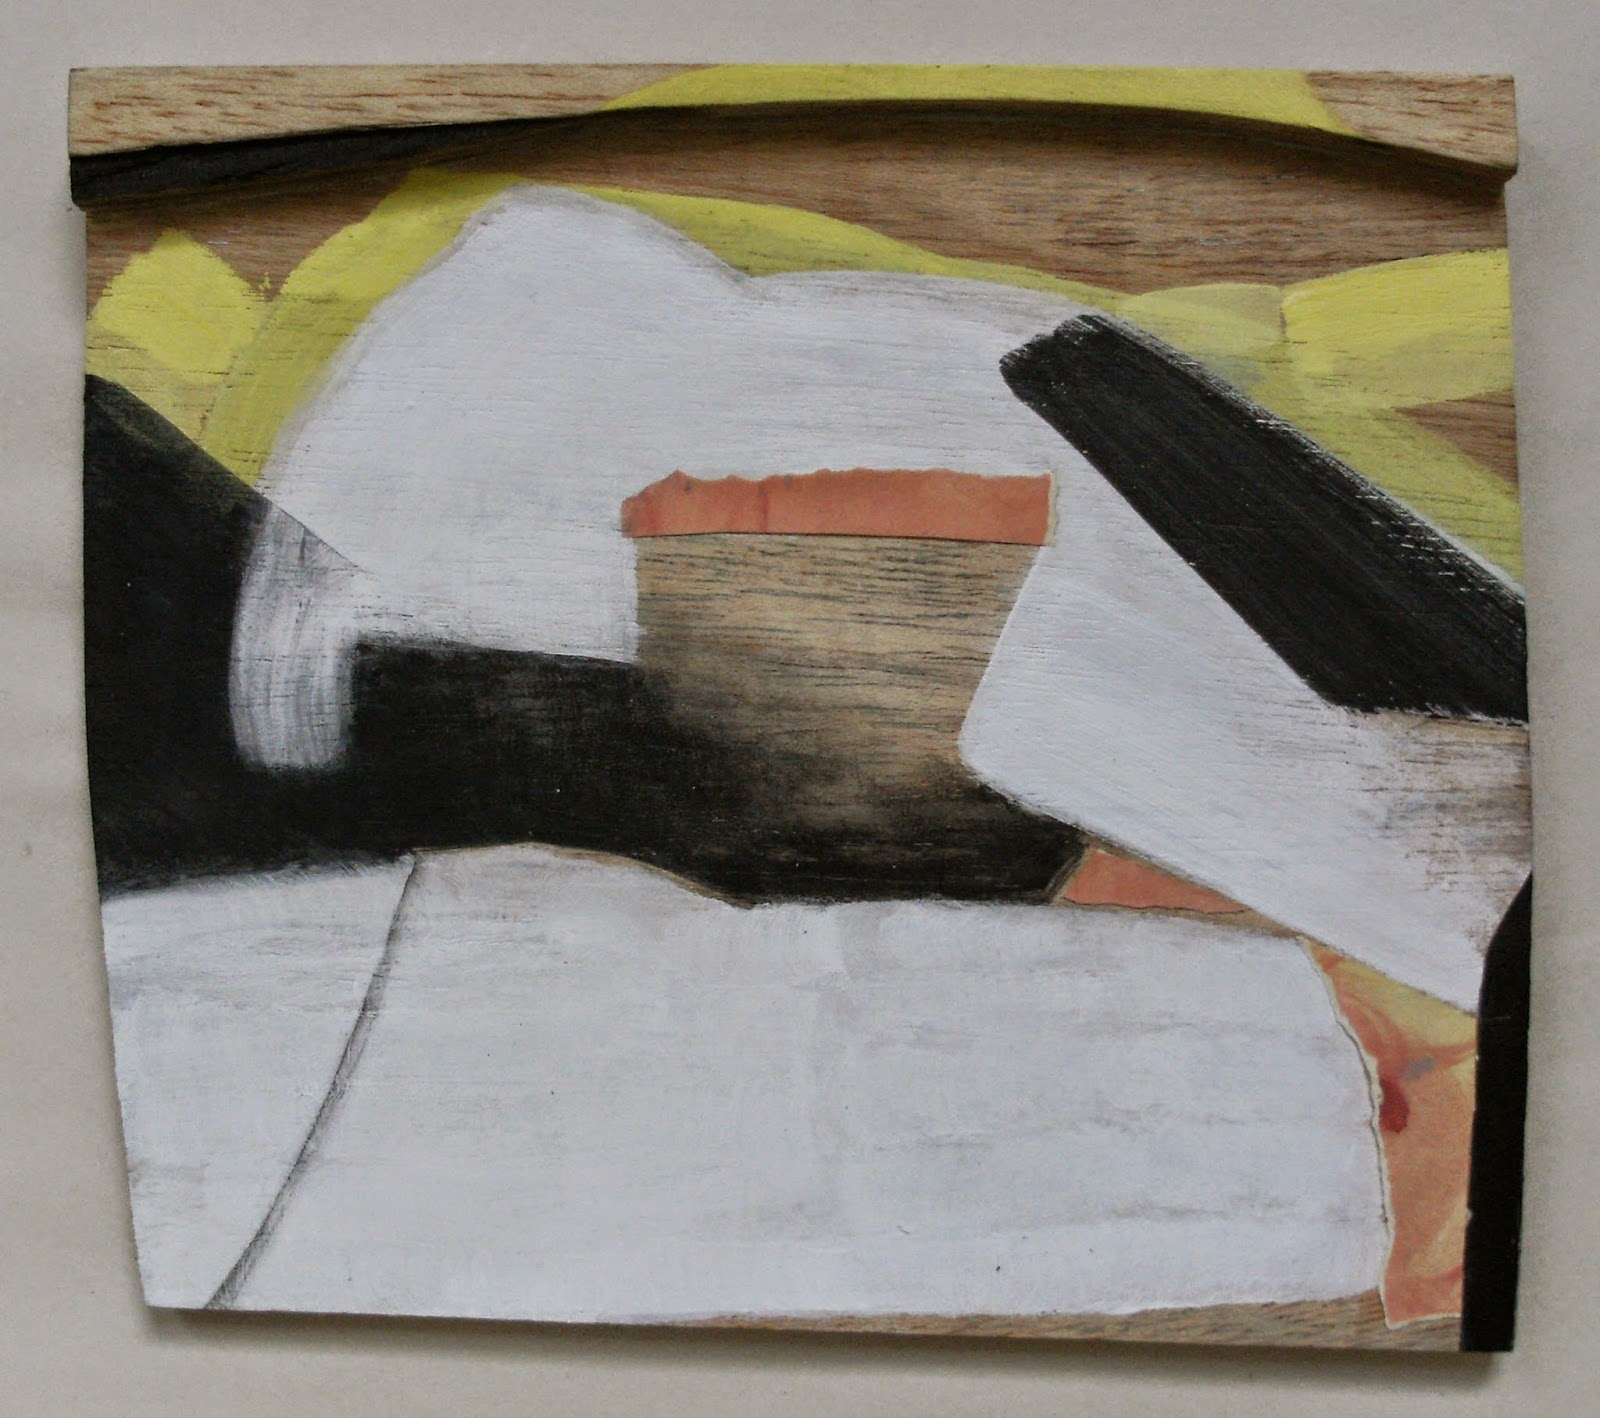 2015 28x32cm acrylic and paper on plywood with plywood lintel 1600x1418